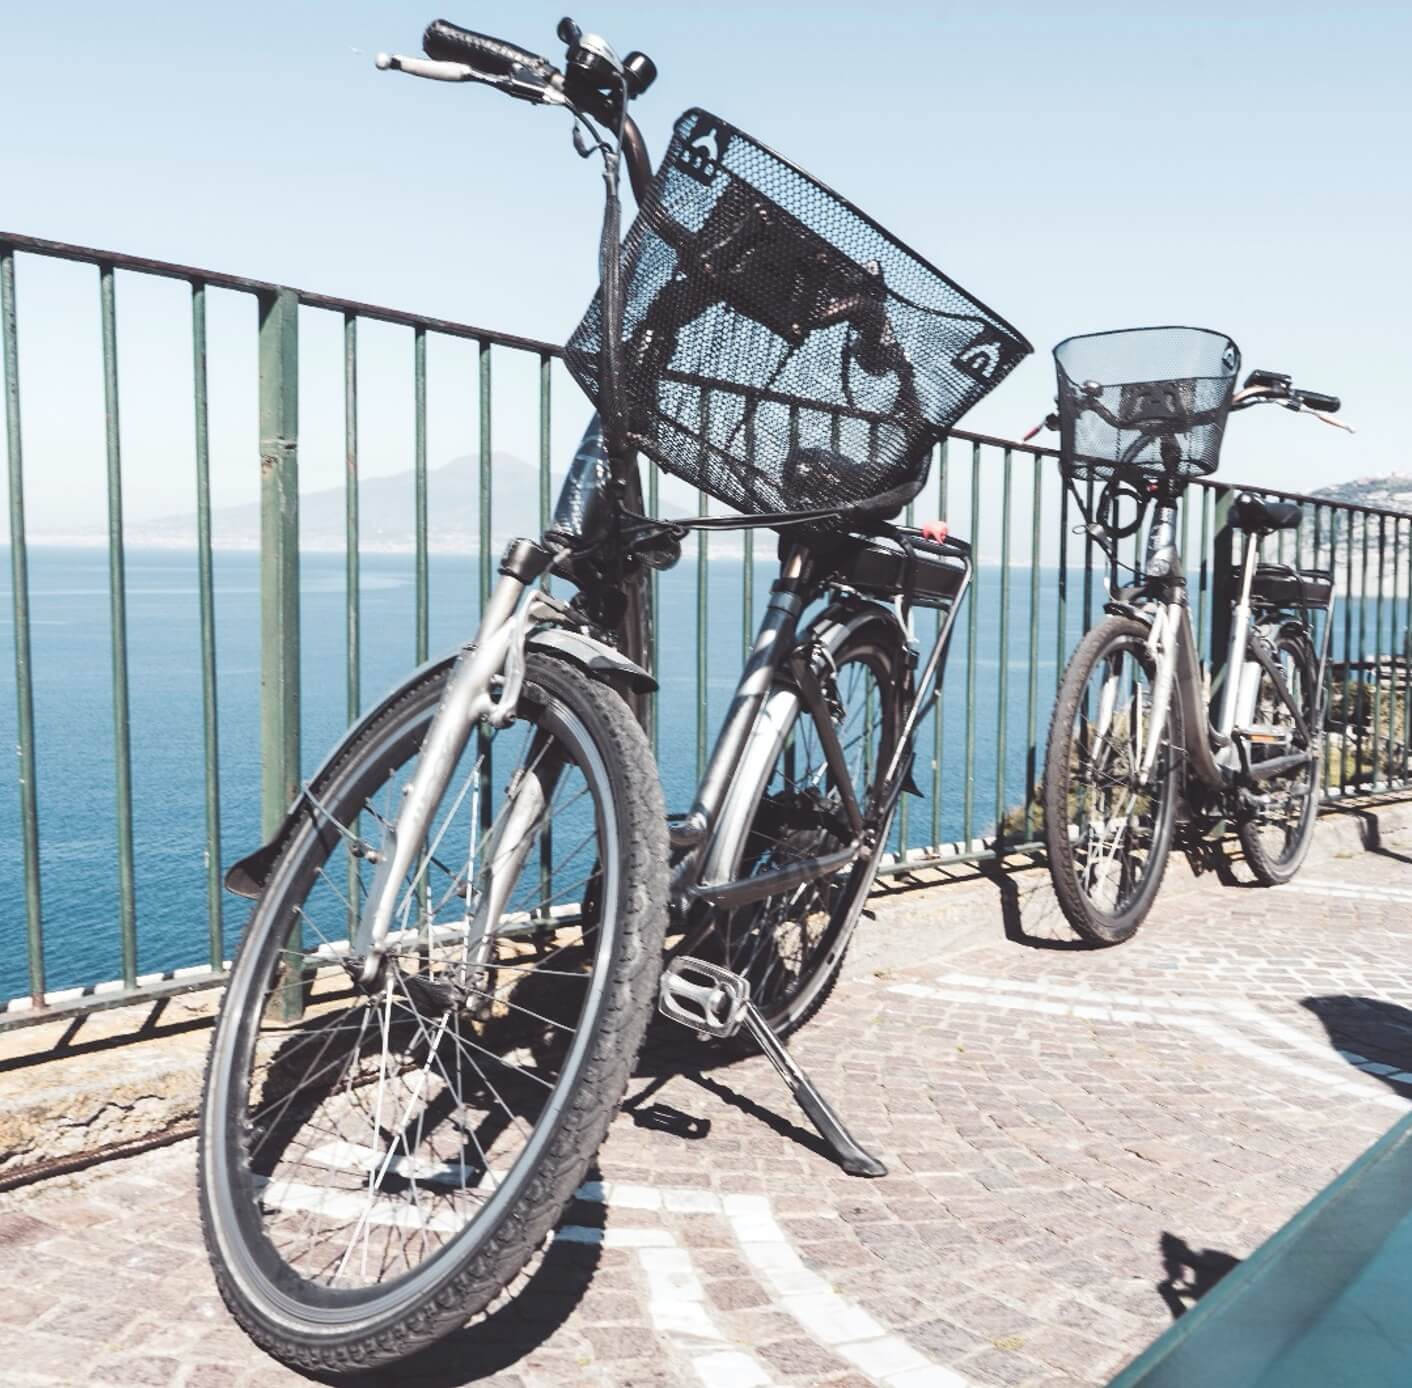 How much does it cost to rent an electric bike on the Amalfi Coast